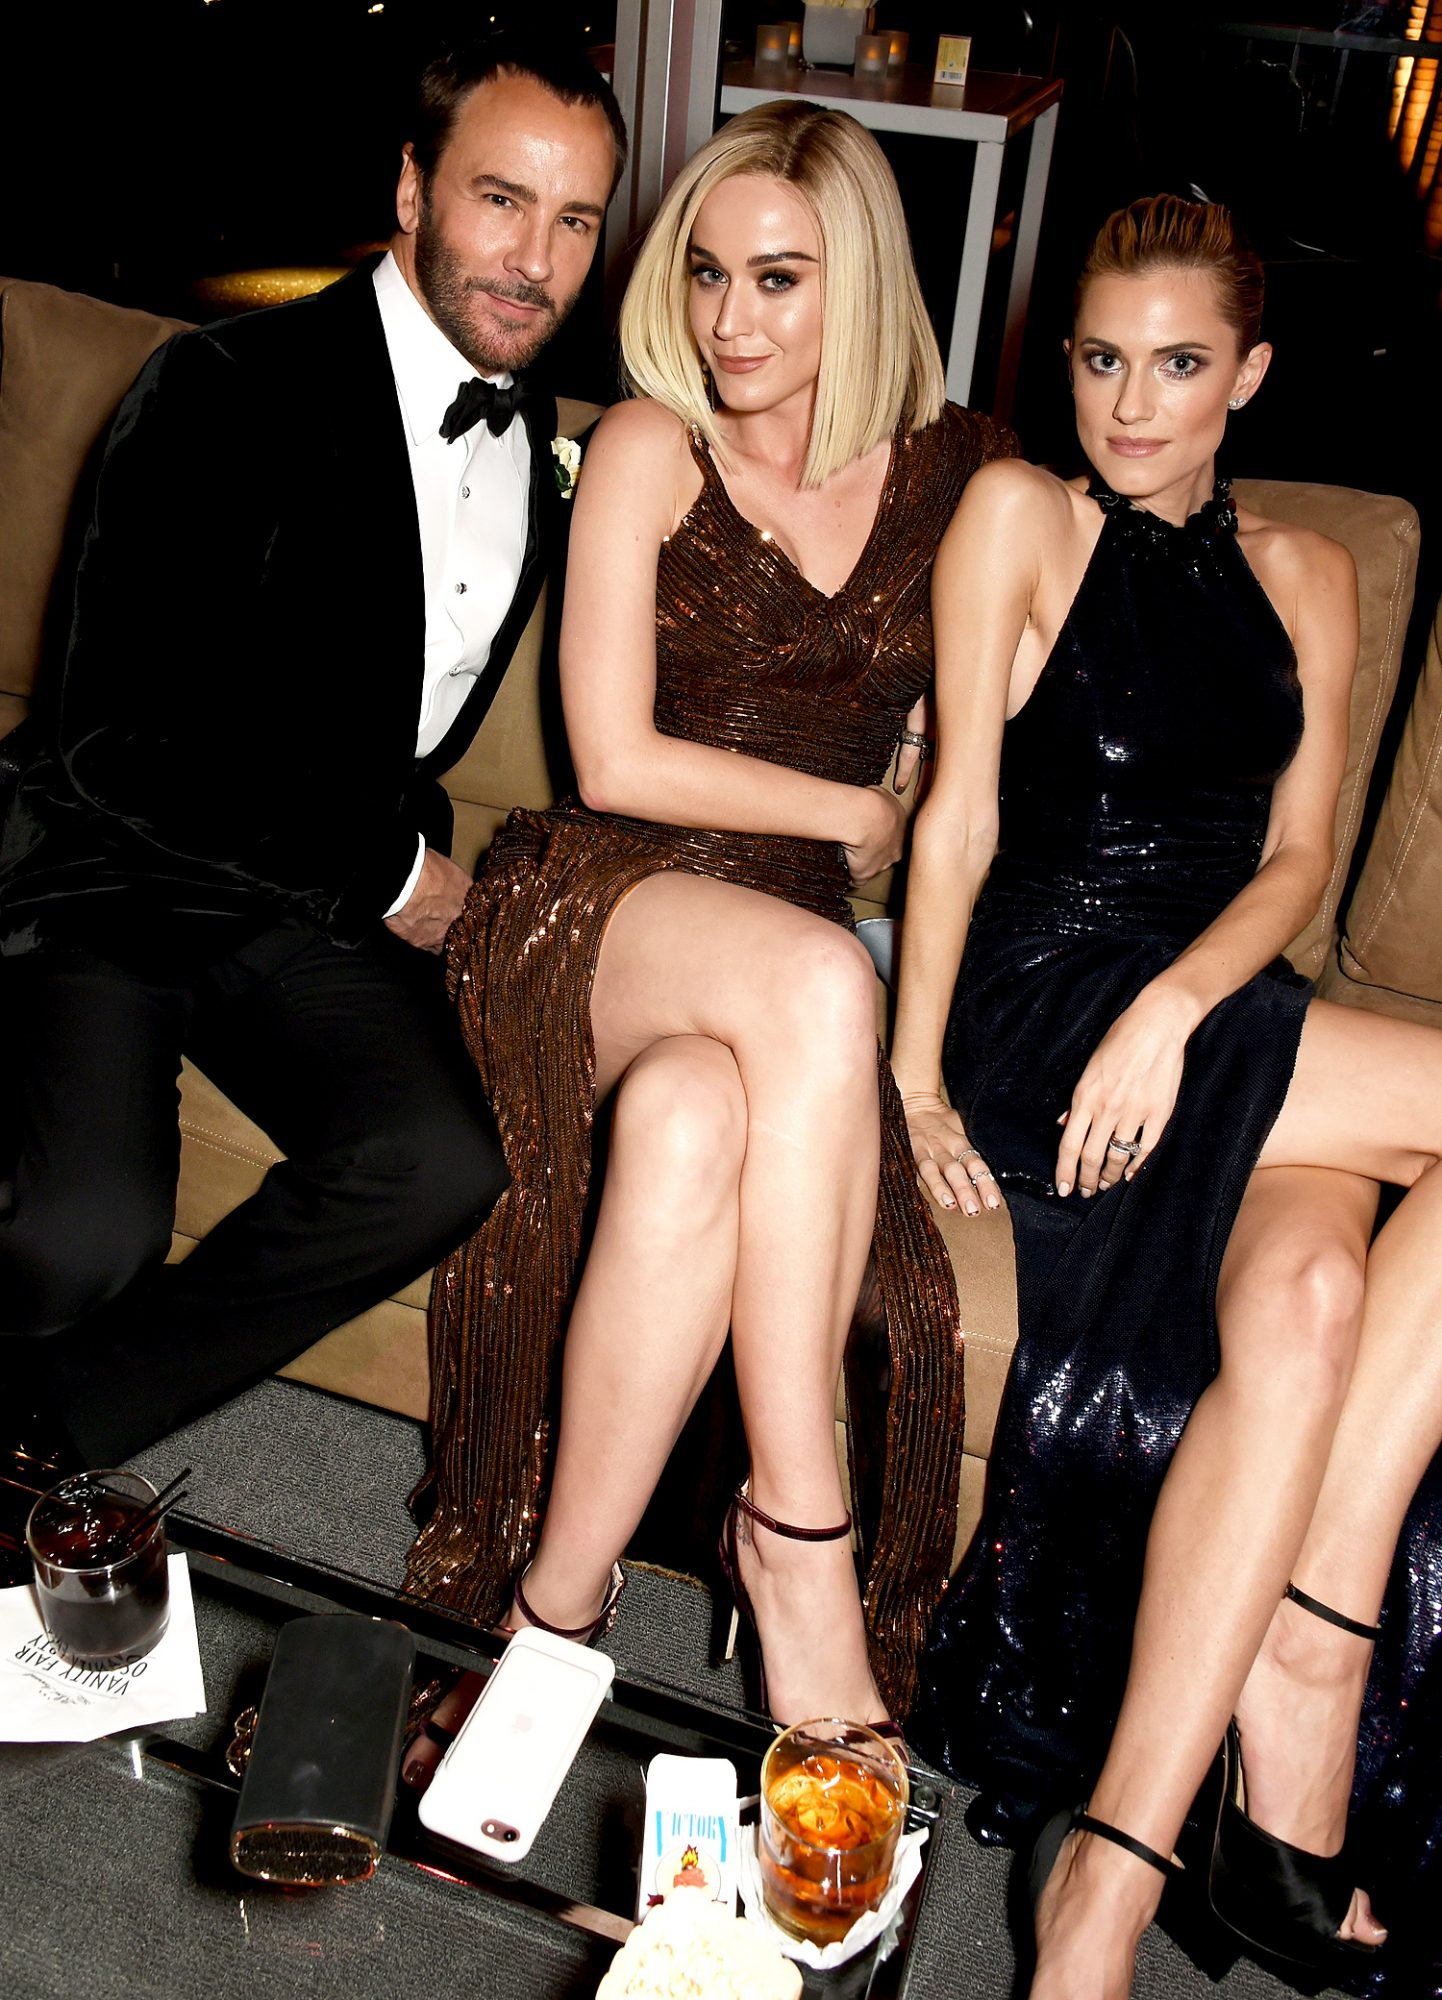 BEVERLY HILLS, CA - FEBRUARY 26: (L-R) Designer Tom Ford, singer-songwriter Katy Perry, and actor Allison Williams attend the 2017 Vanity Fair Oscar Party hosted by Graydon Carter at Wallis Annenberg Center for the Performing Arts on February 26, 2017 in Beverly Hills, California. (Photo by Dave M. Benett/VF17/WireImage)